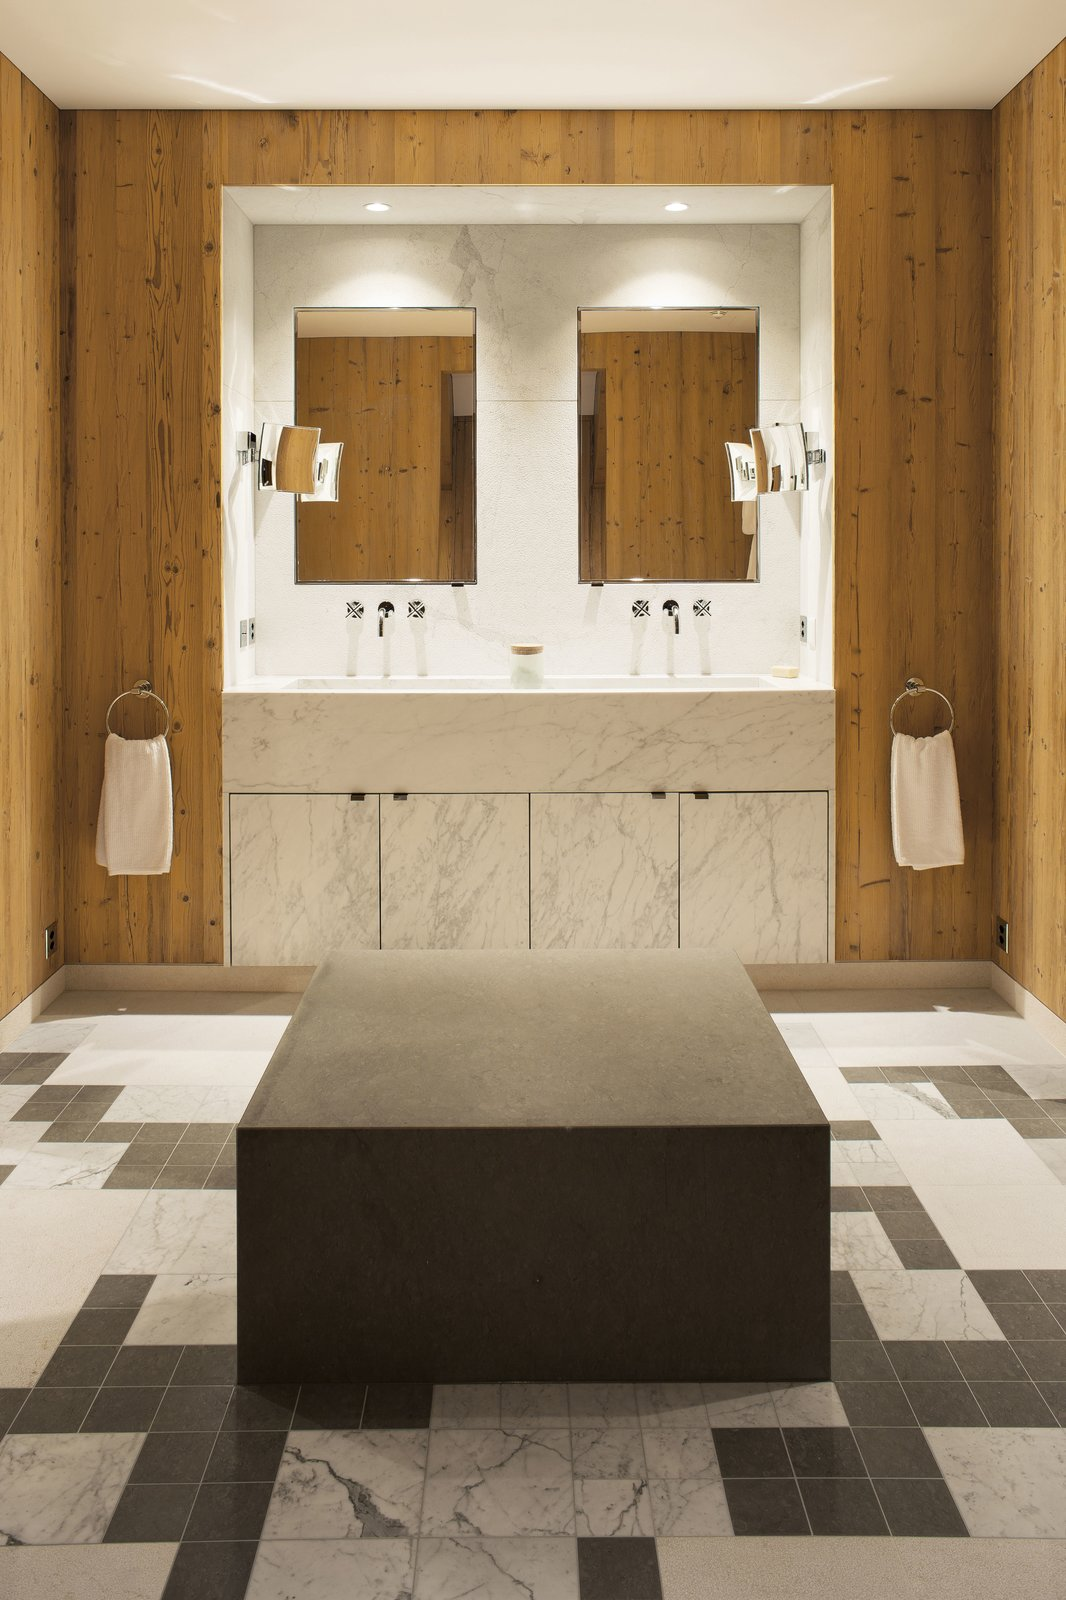 The master bathroom's features a custom-made bench and marble mosaic flooring.